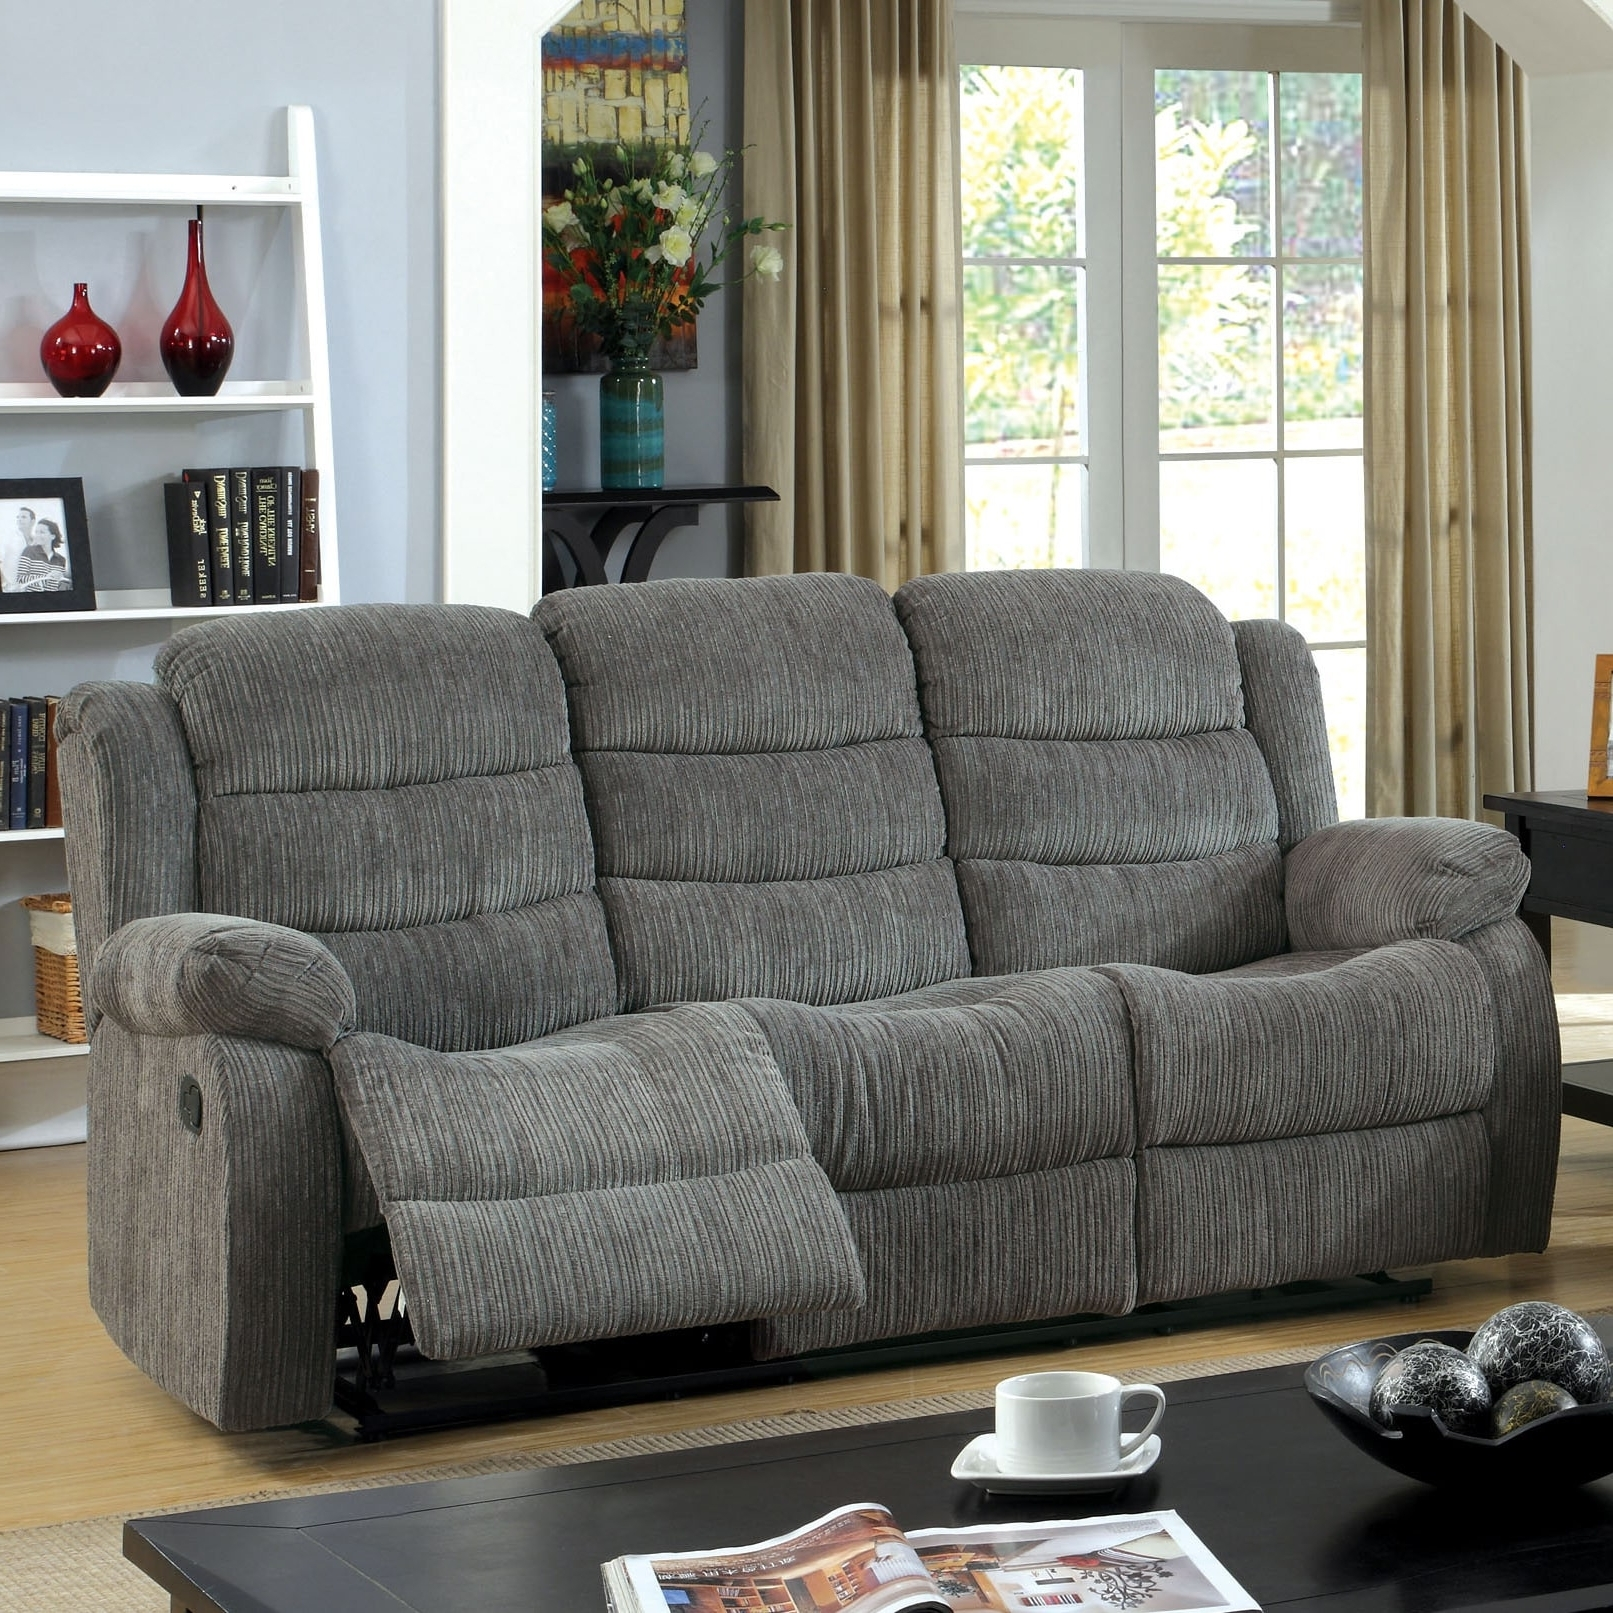 Newest American Furniture Warehouse Greensboro Nc Fresh Fresh Sectional Pertaining To Sectional Sofas In Greensboro Nc (View 8 of 20)